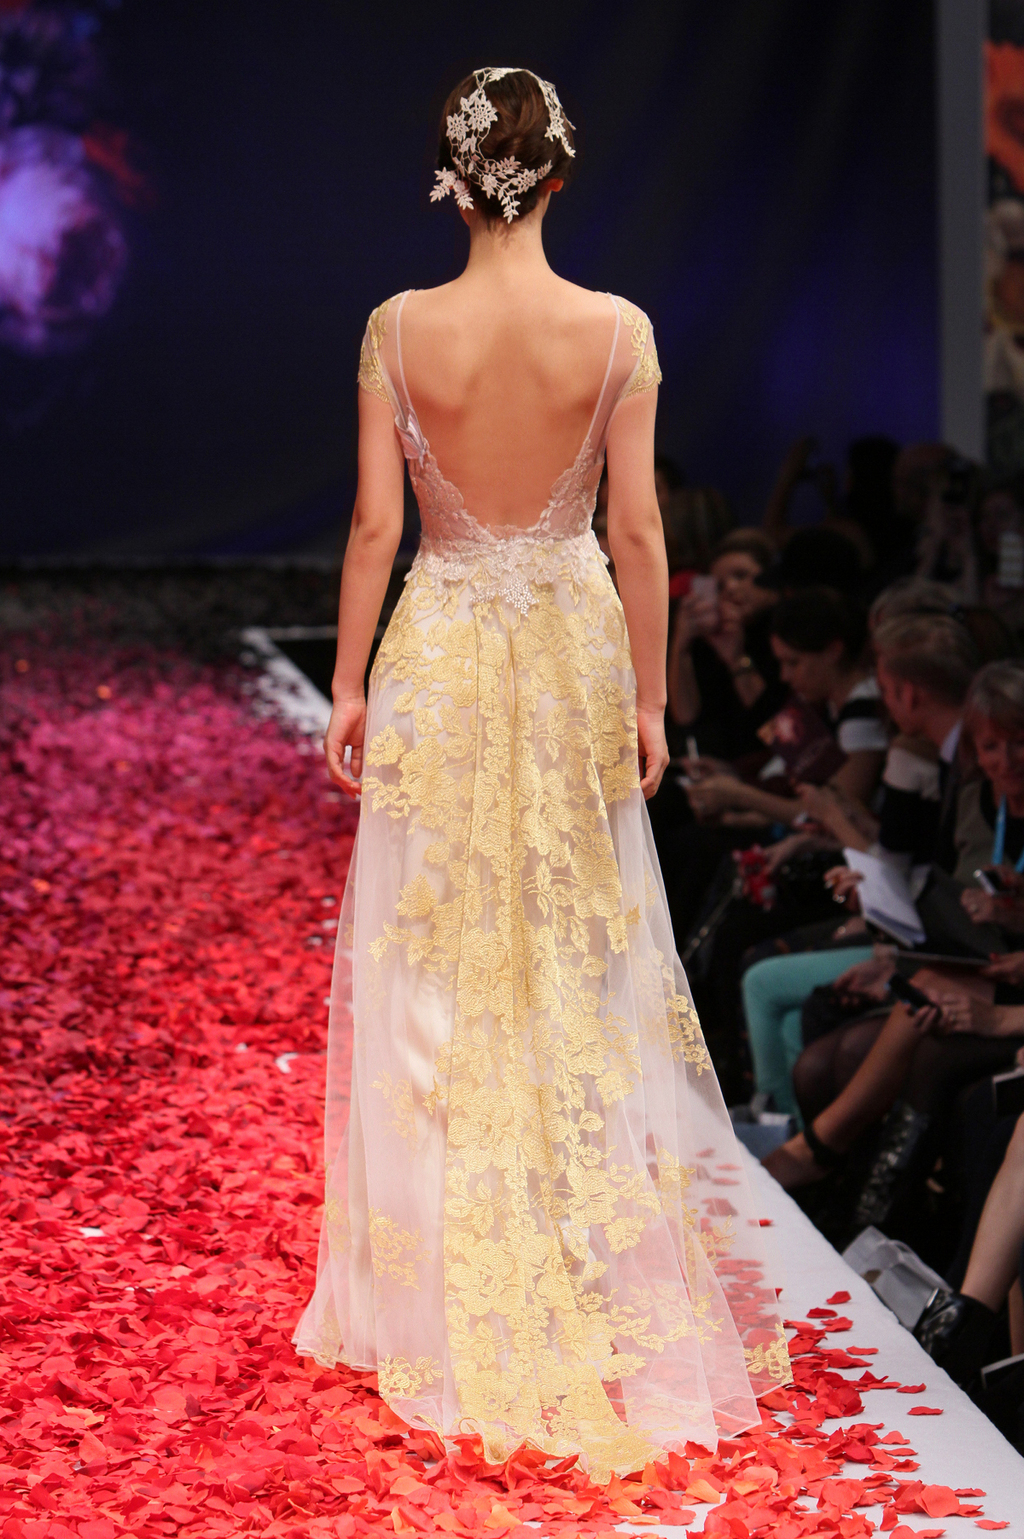 Amber wedding dress by Claire Pettibone 2014 Still Life bridal collection